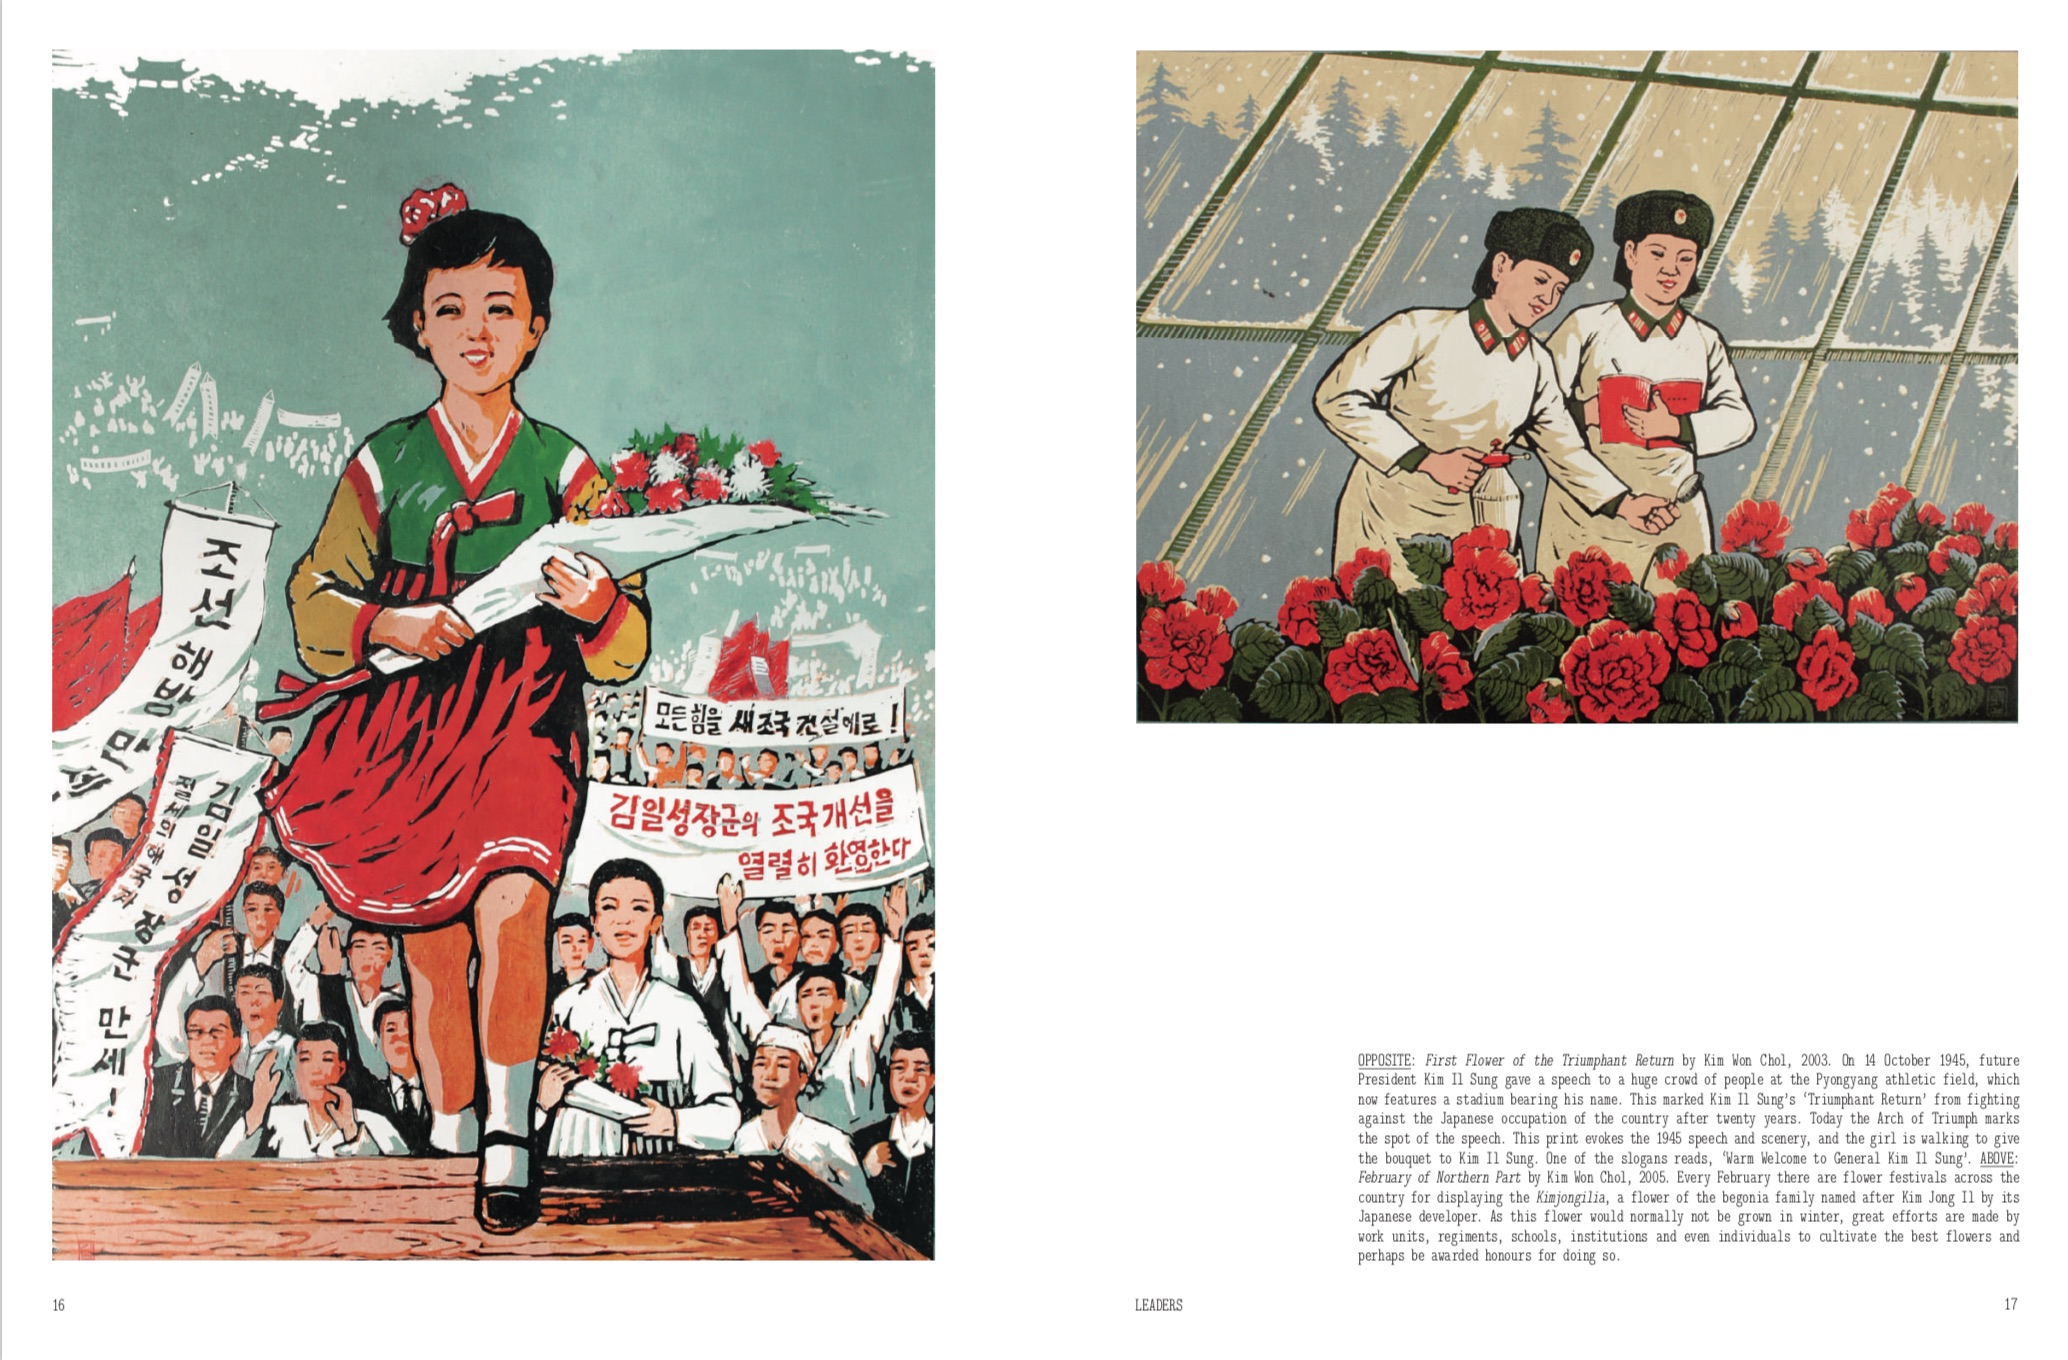 By Nick Bonner from Printed in North Korea: The Art of Everyday Life in the DPRK copyright Phaidon 2019